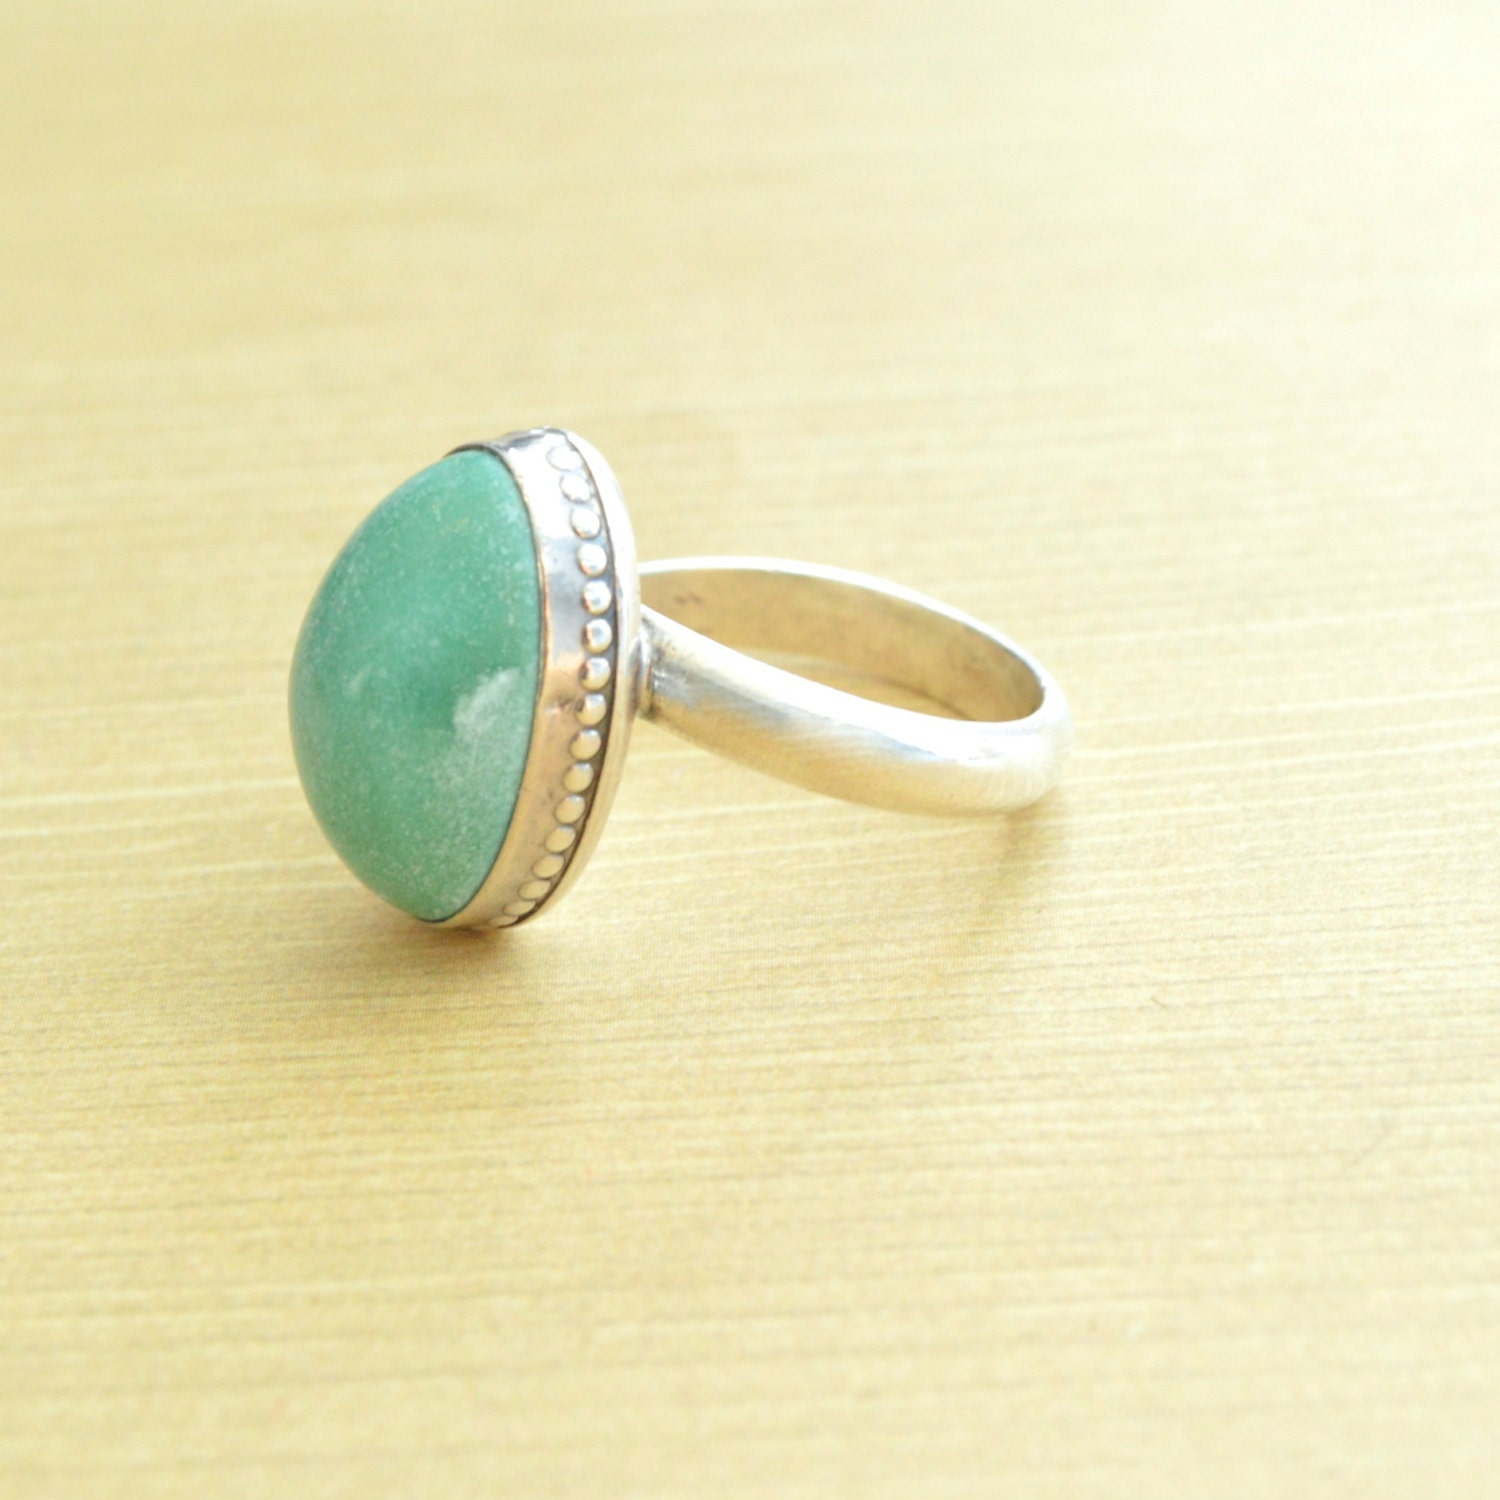 simple turquoise ring turquoise jewelry sterling silver